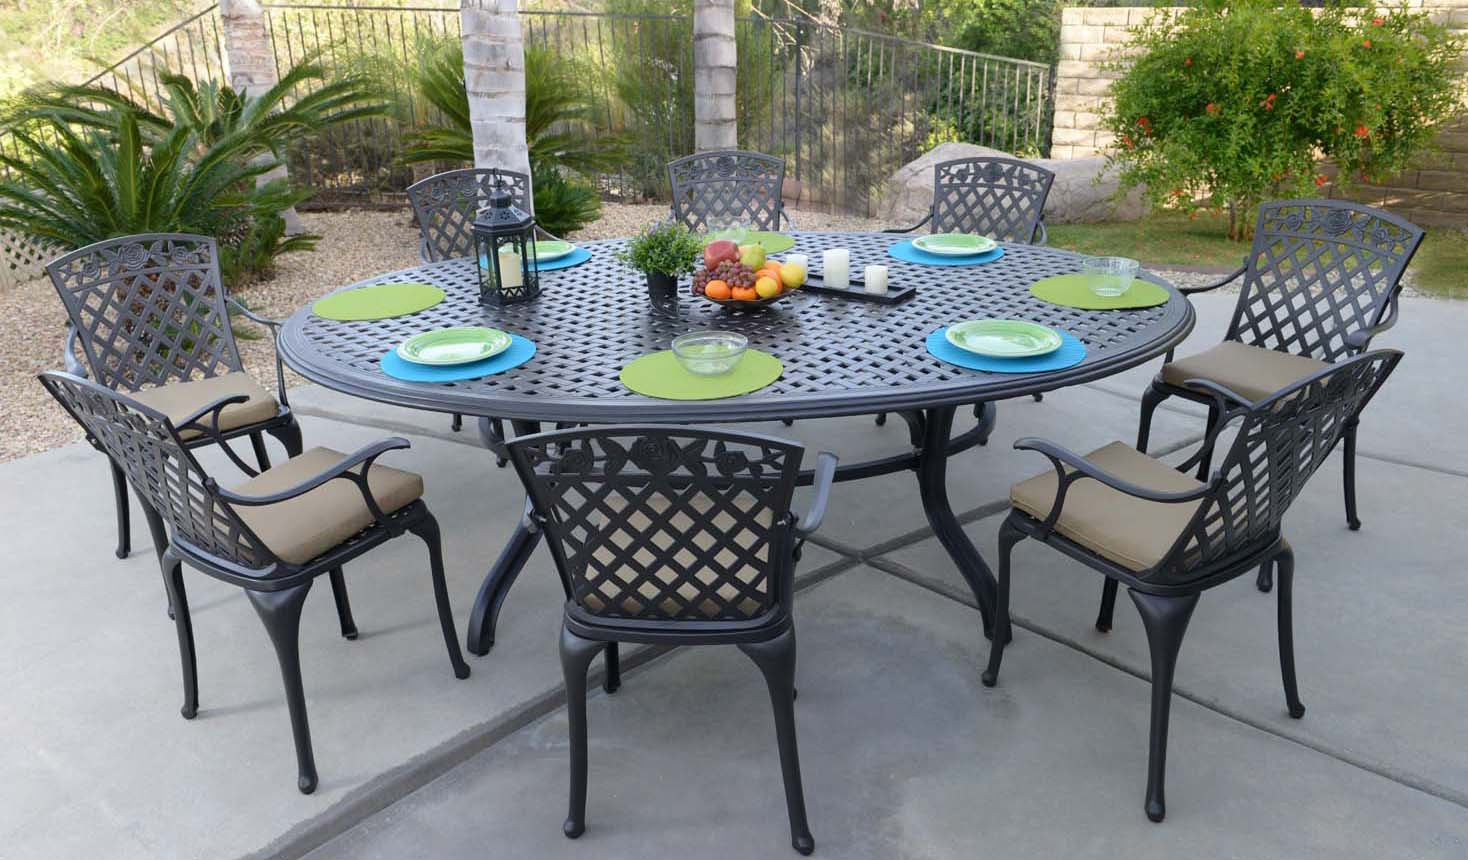 CAST ALUMINUM PATIO TABLES AND CHAIRS